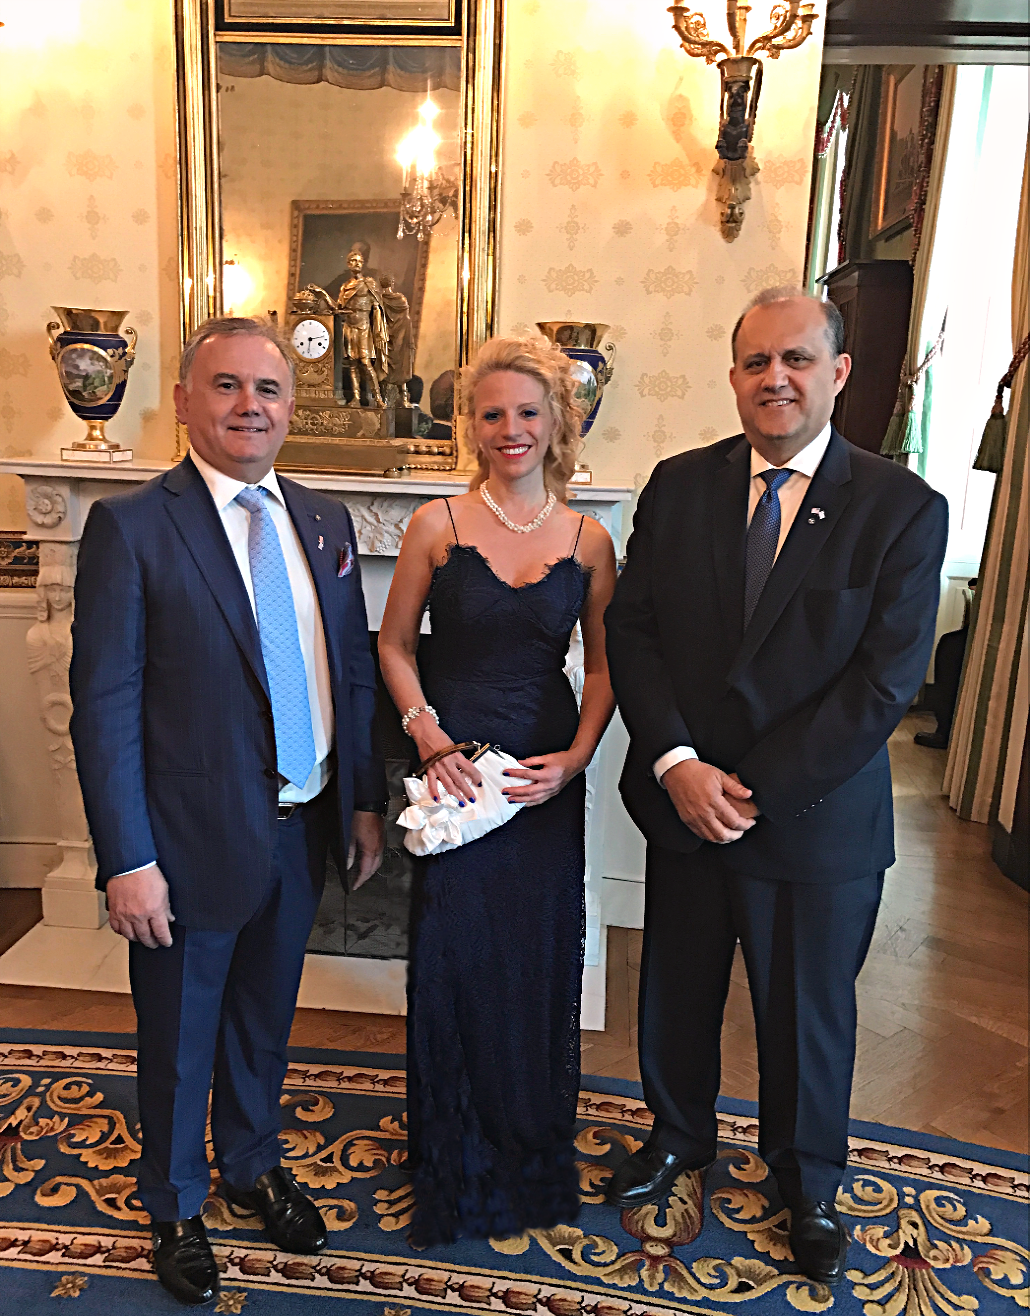 President Larigakis with Board Members Dimitris Halakos and Dr. Athina Balta